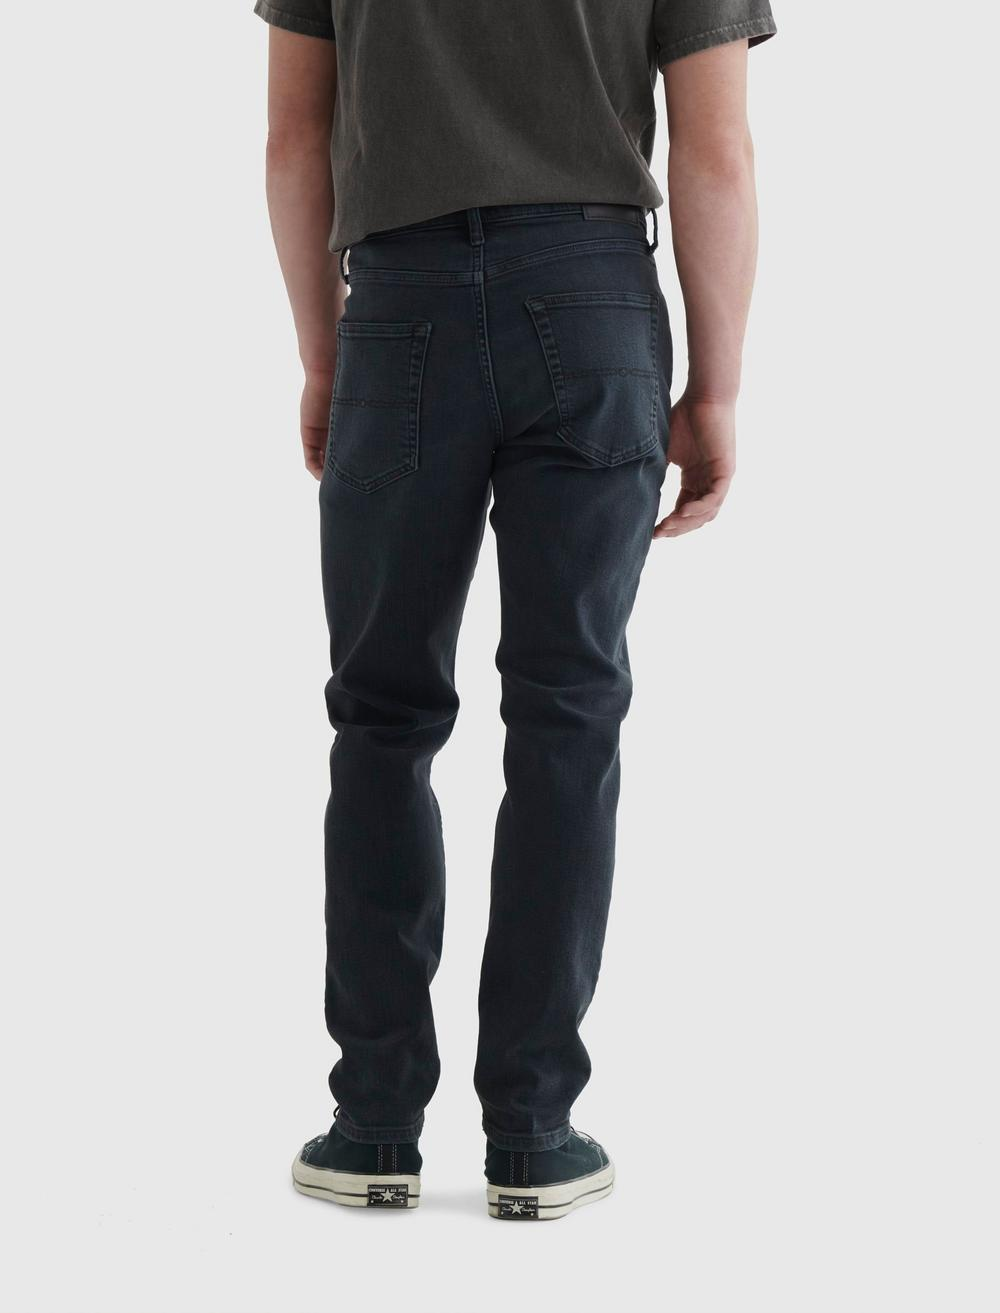 411 ATHLETIC TAPER ADVANCED STRETCH JEAN, image 4